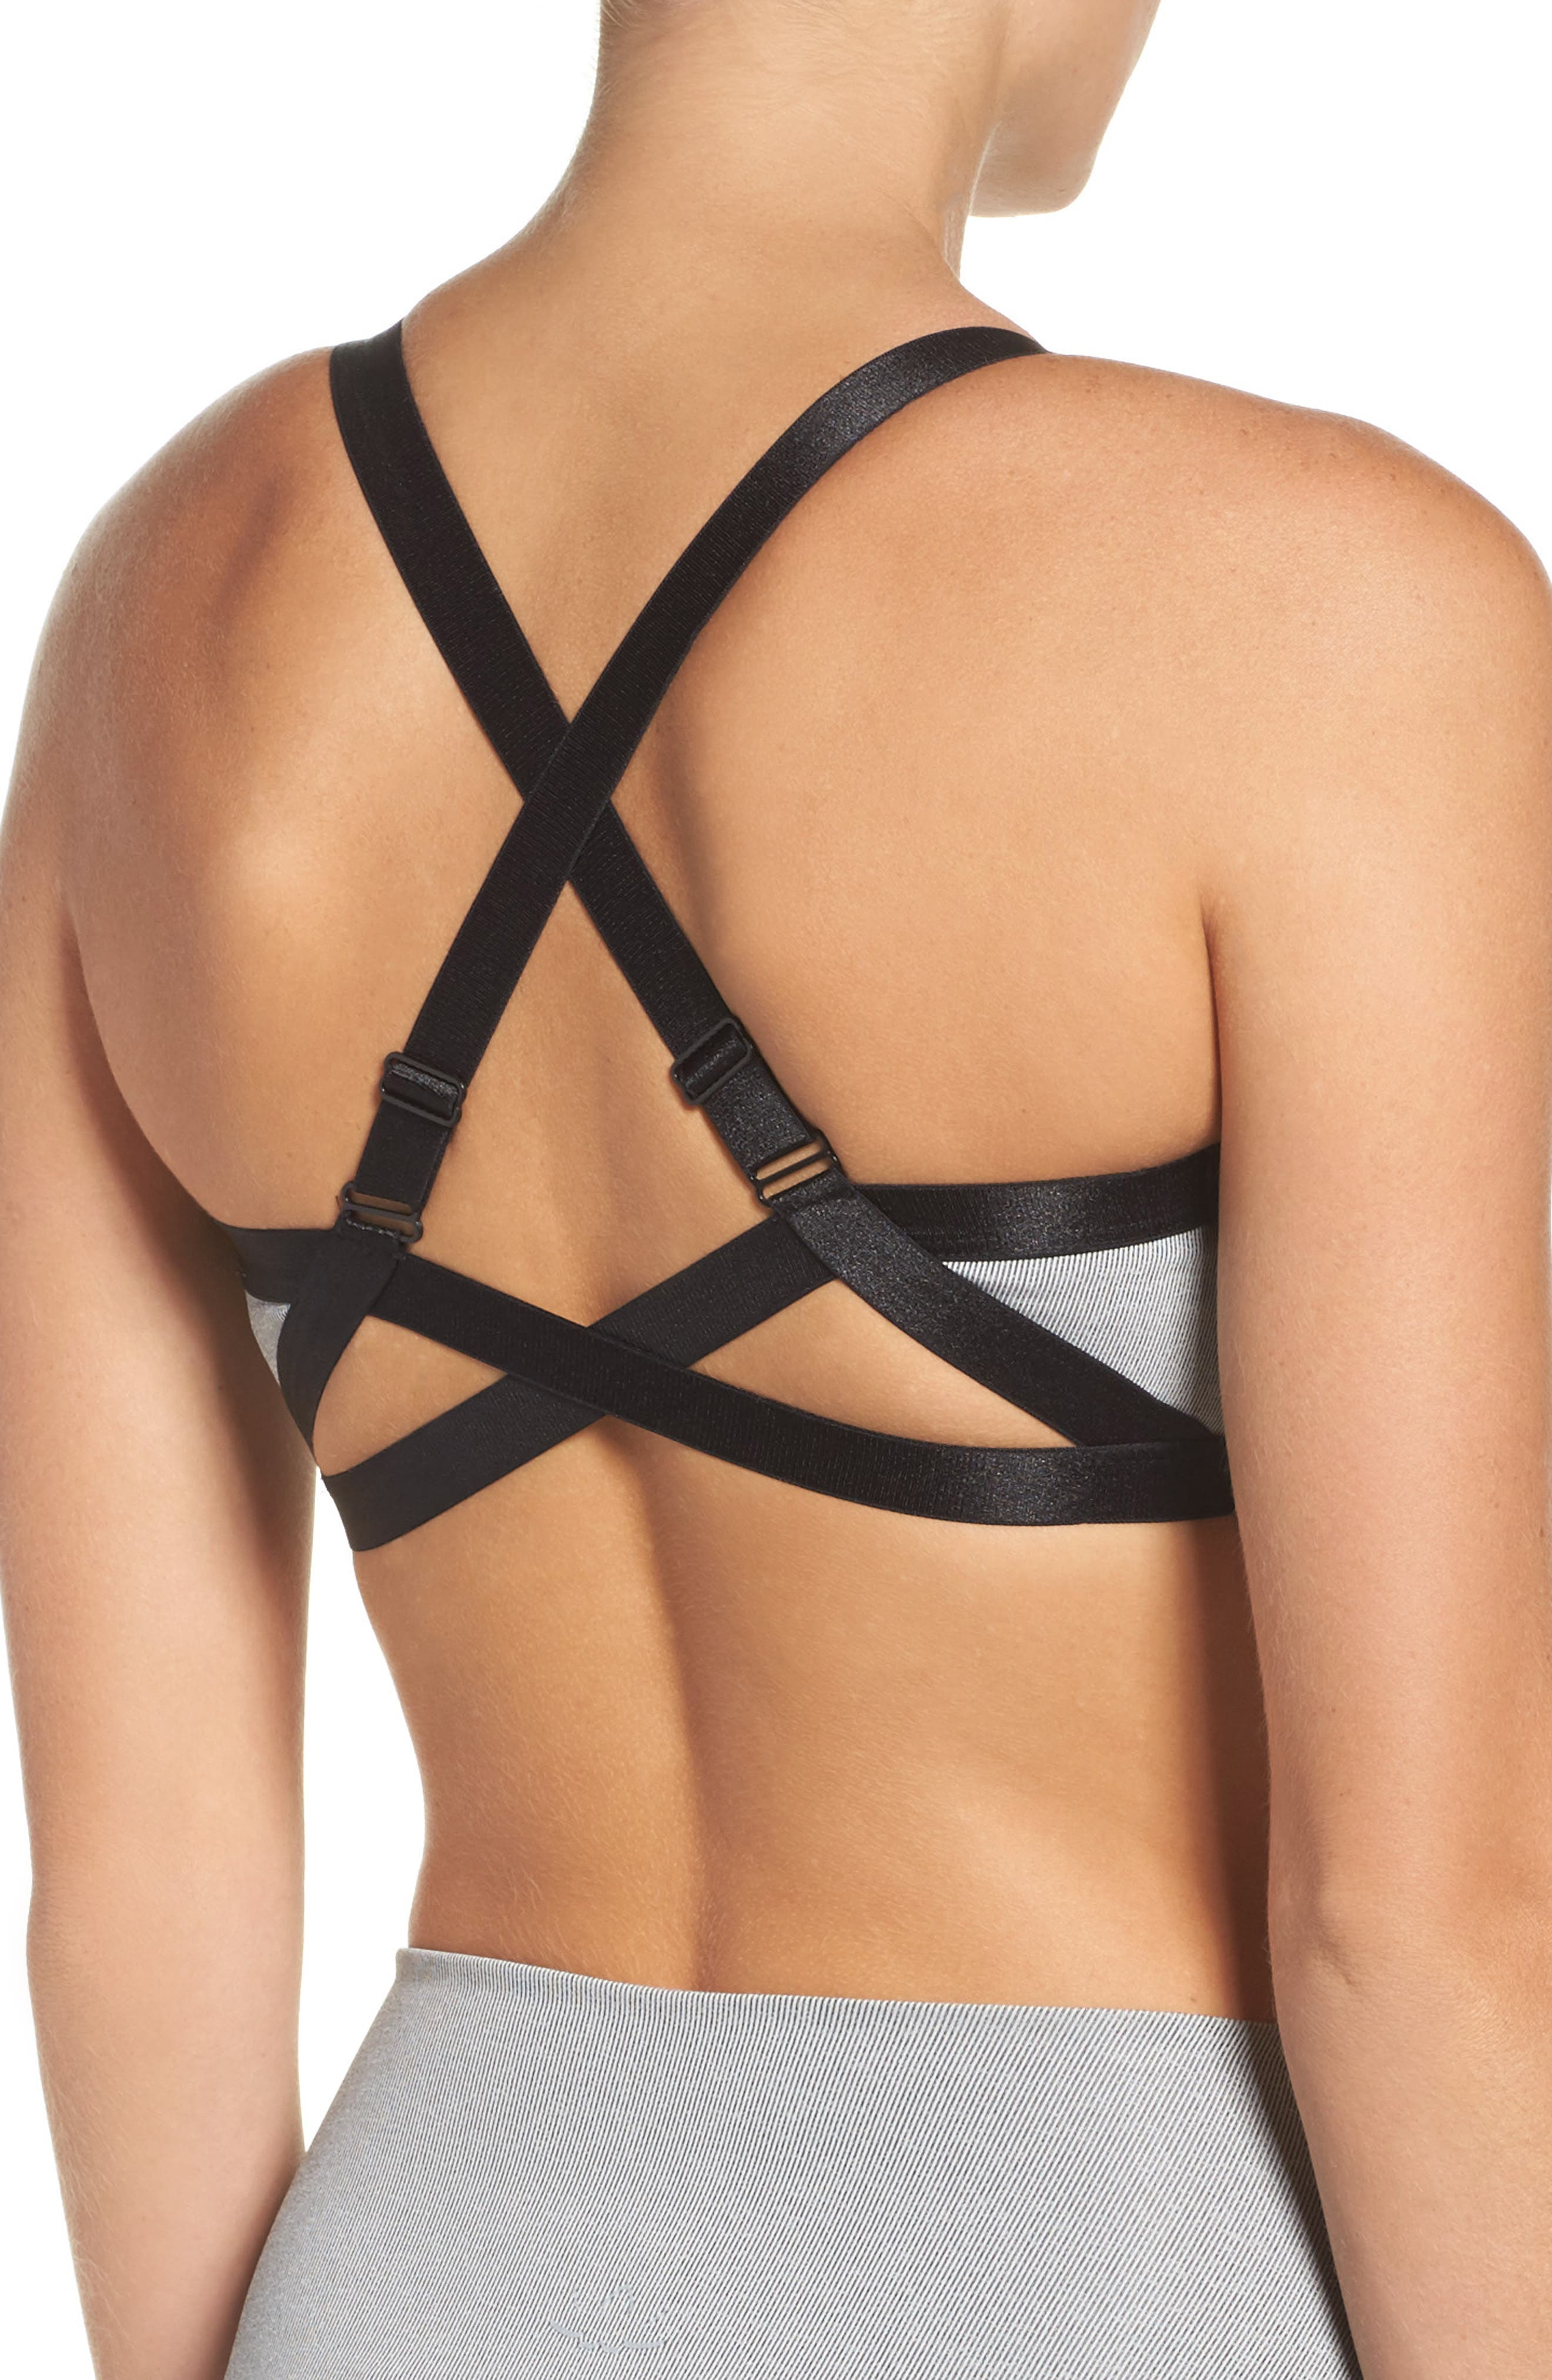 Overture Strappy Sports Bra,                             Alternate thumbnail 2, color,                             058